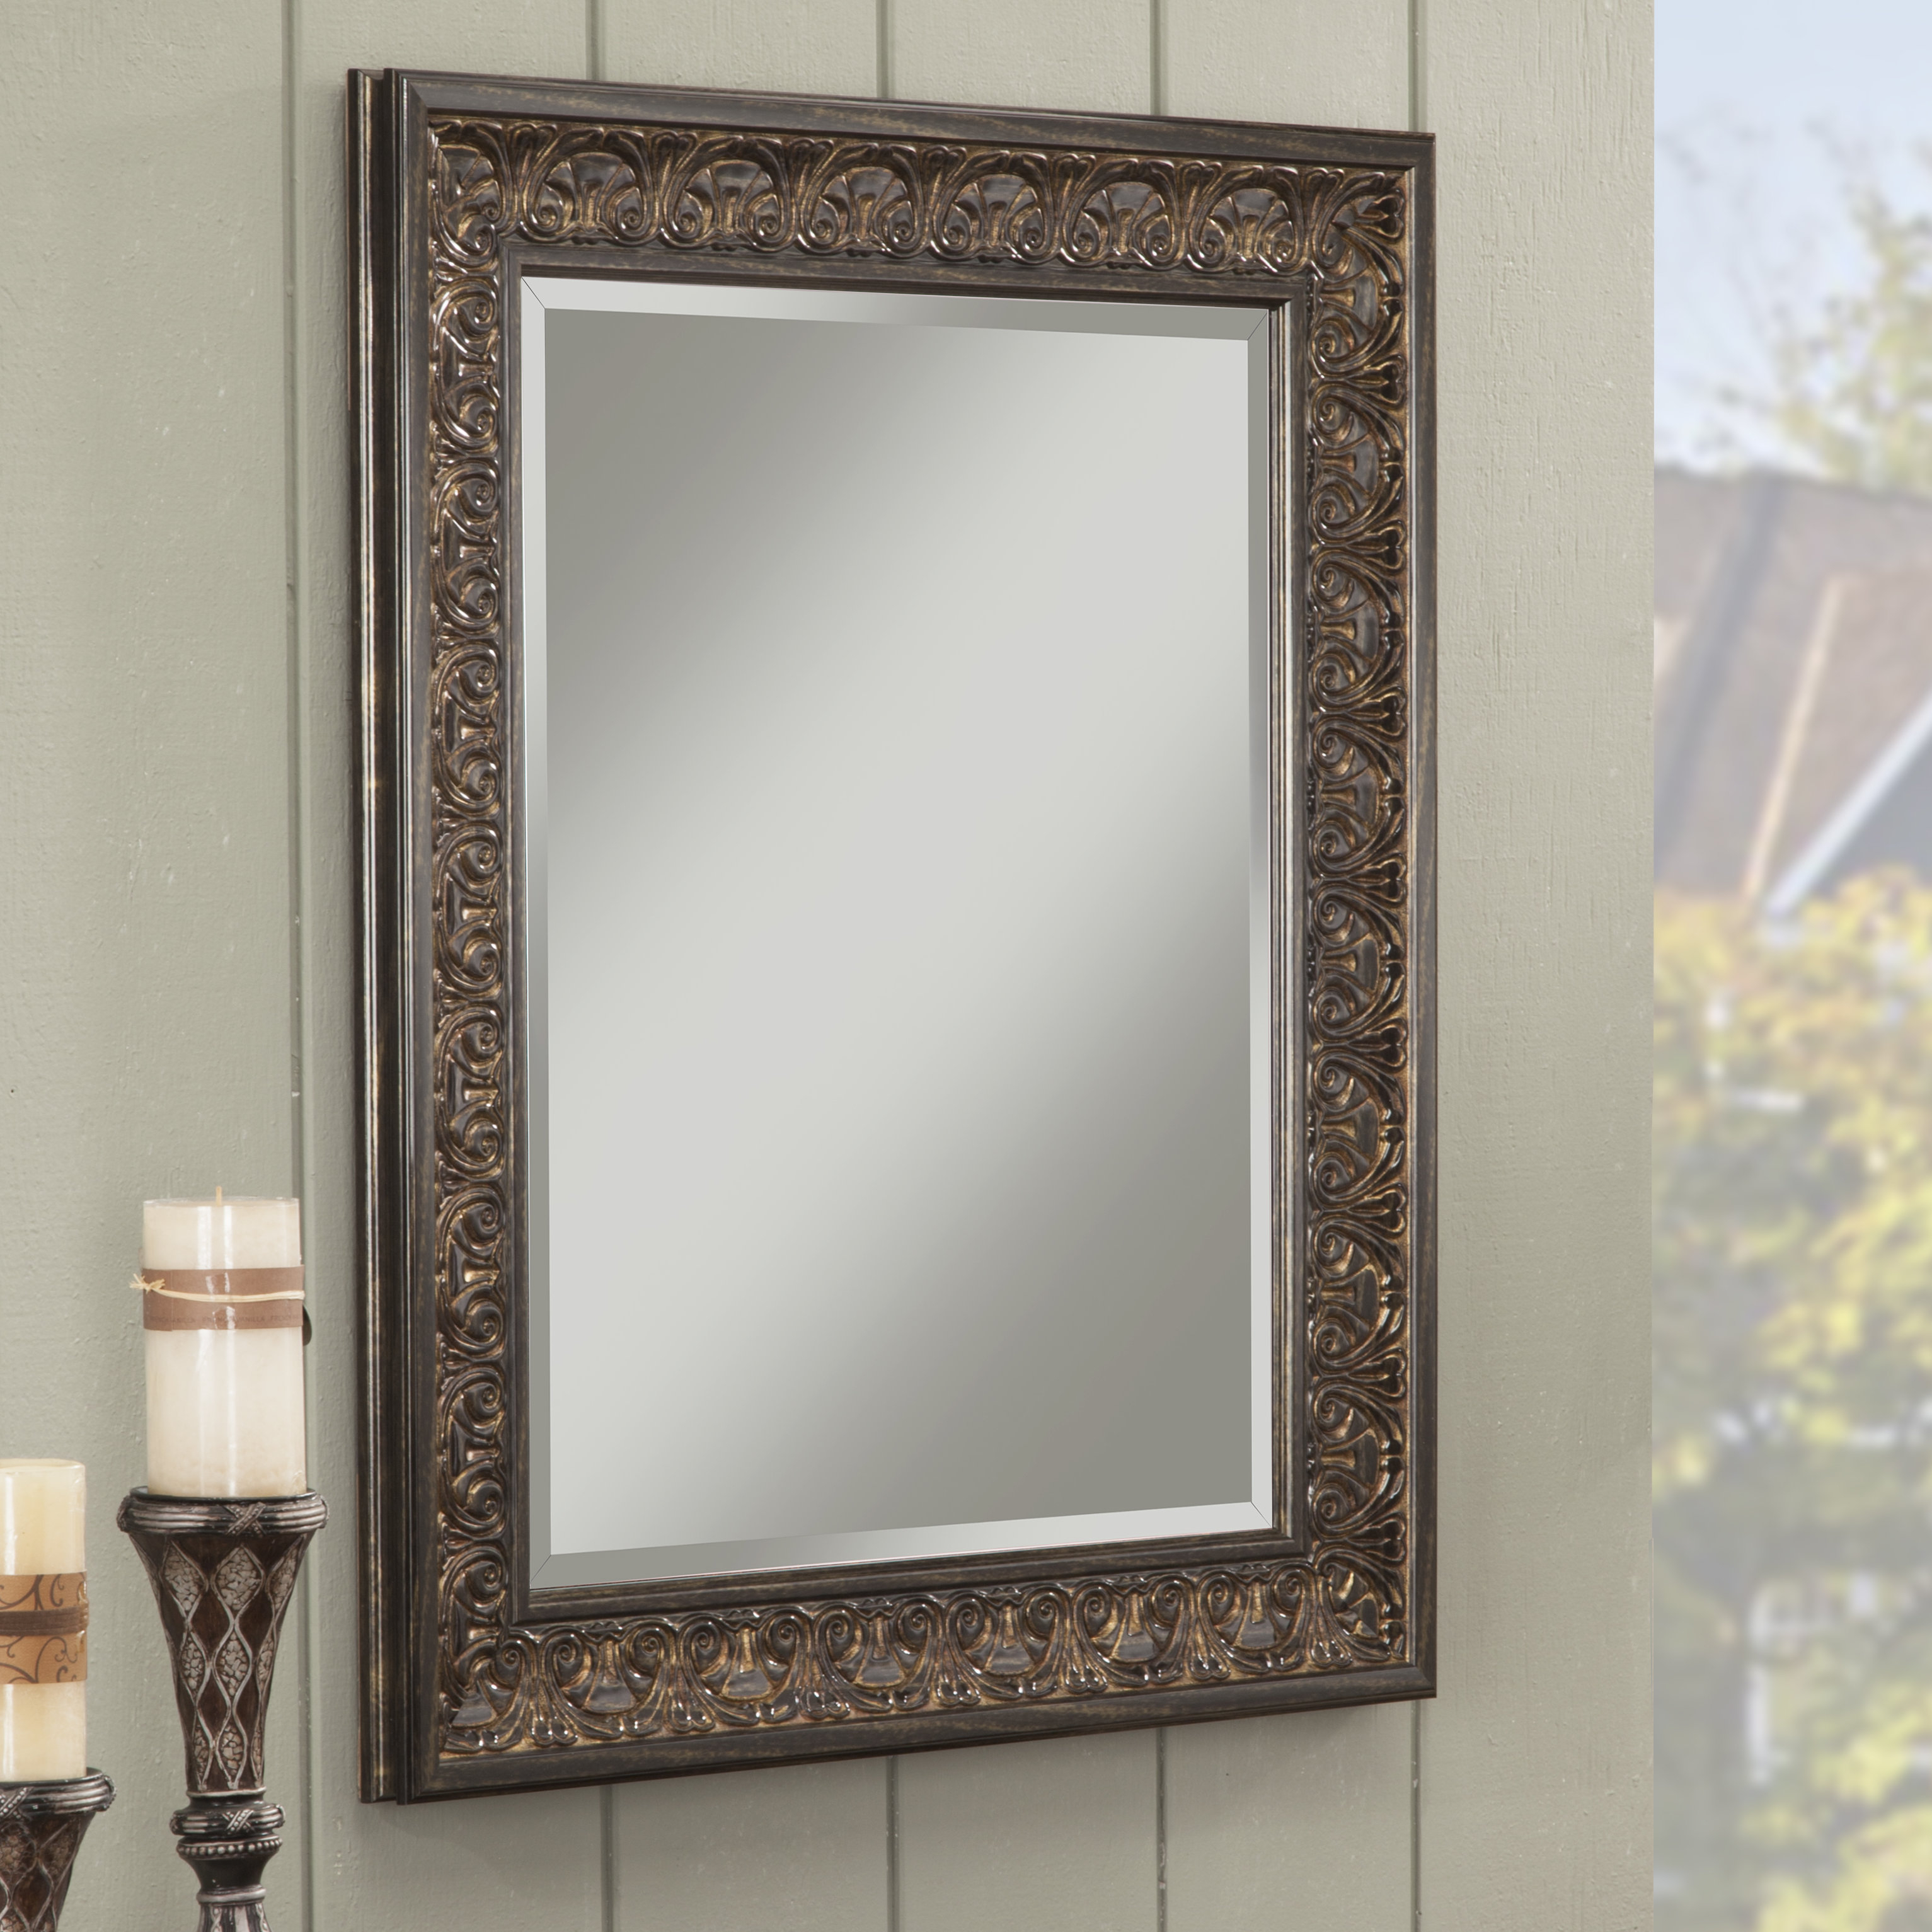 Boyers Wall Mirror Throughout Rectangle Plastic Beveled Wall Mirrors (View 12 of 20)